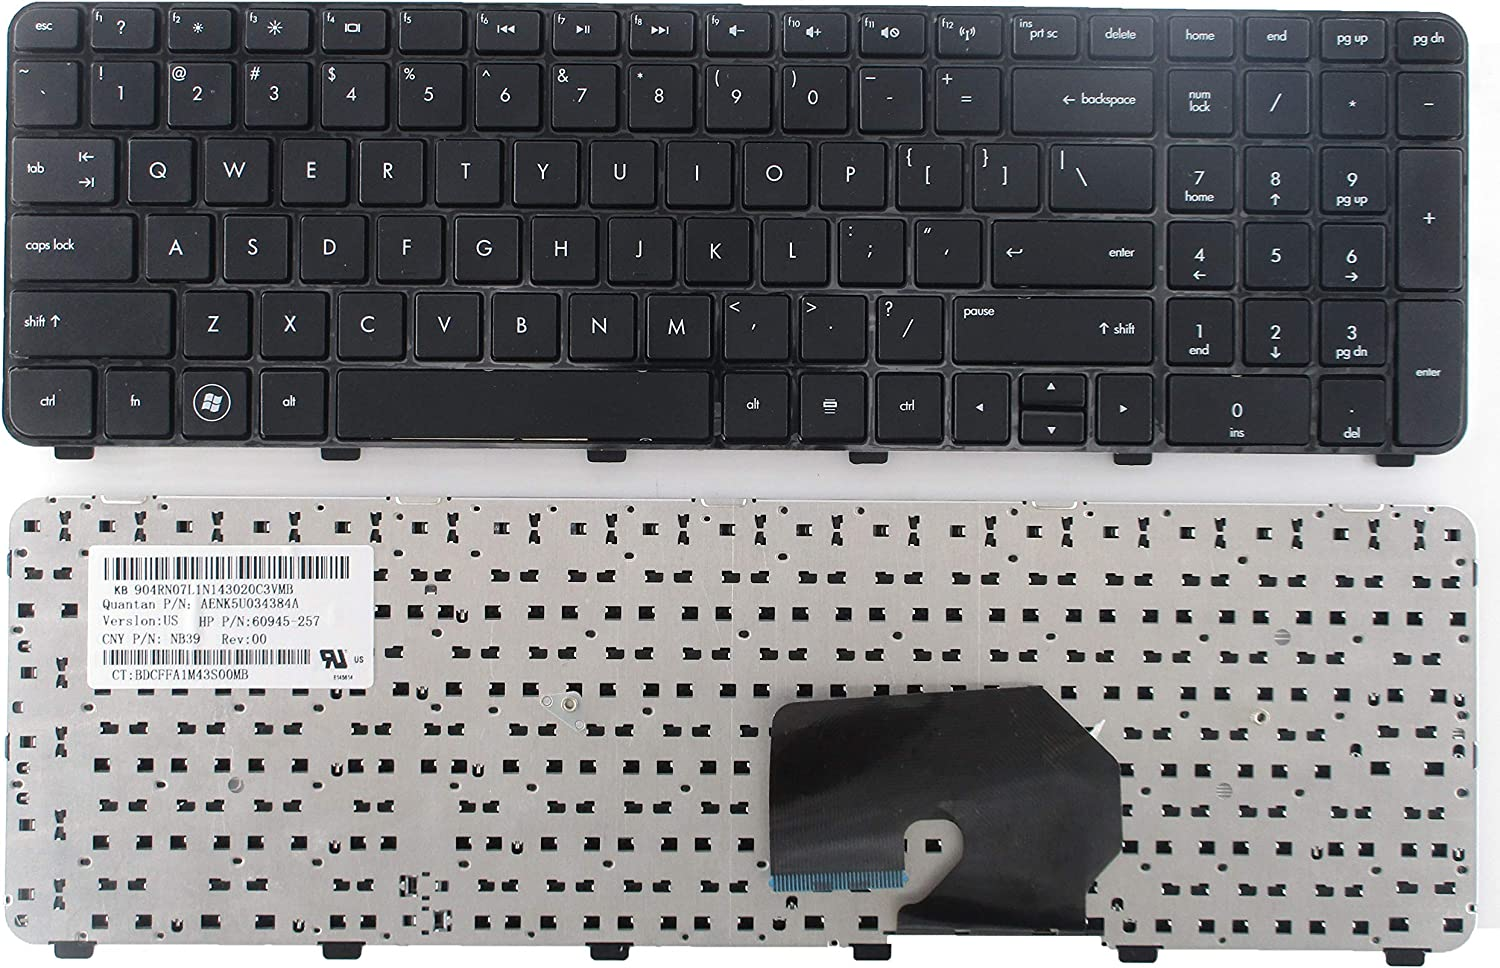 SUNMALL Laptop Keyboard Replacement for HP Pavilion DV7-6000 DV7-6100 DV7-6200 DV7-6B00 DV7-6B56NR DV7-6B55DX DV7-6C95DX DV7-6B57NR DV7t-6C00 DV7-6C DV7t-6000 Series Black US Layout